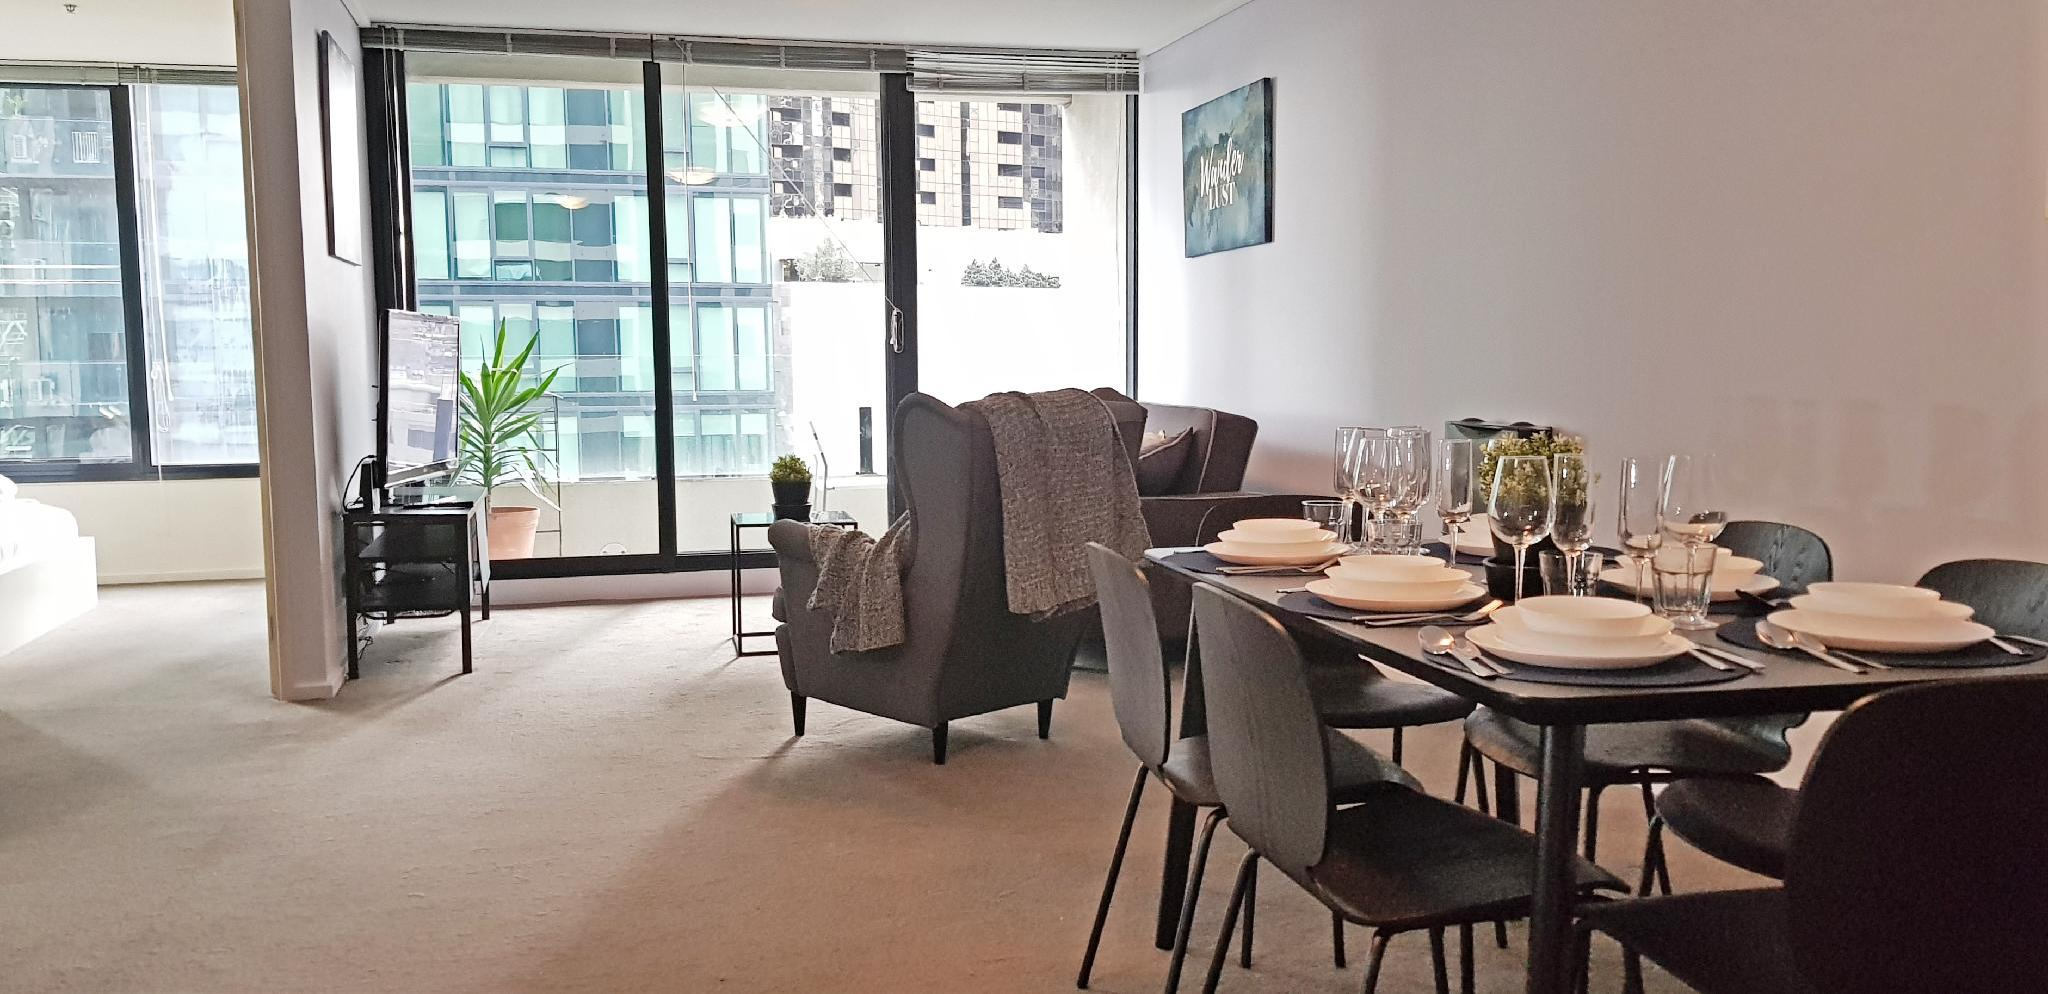 Chic High Rise Condo With Skyline View Balcony